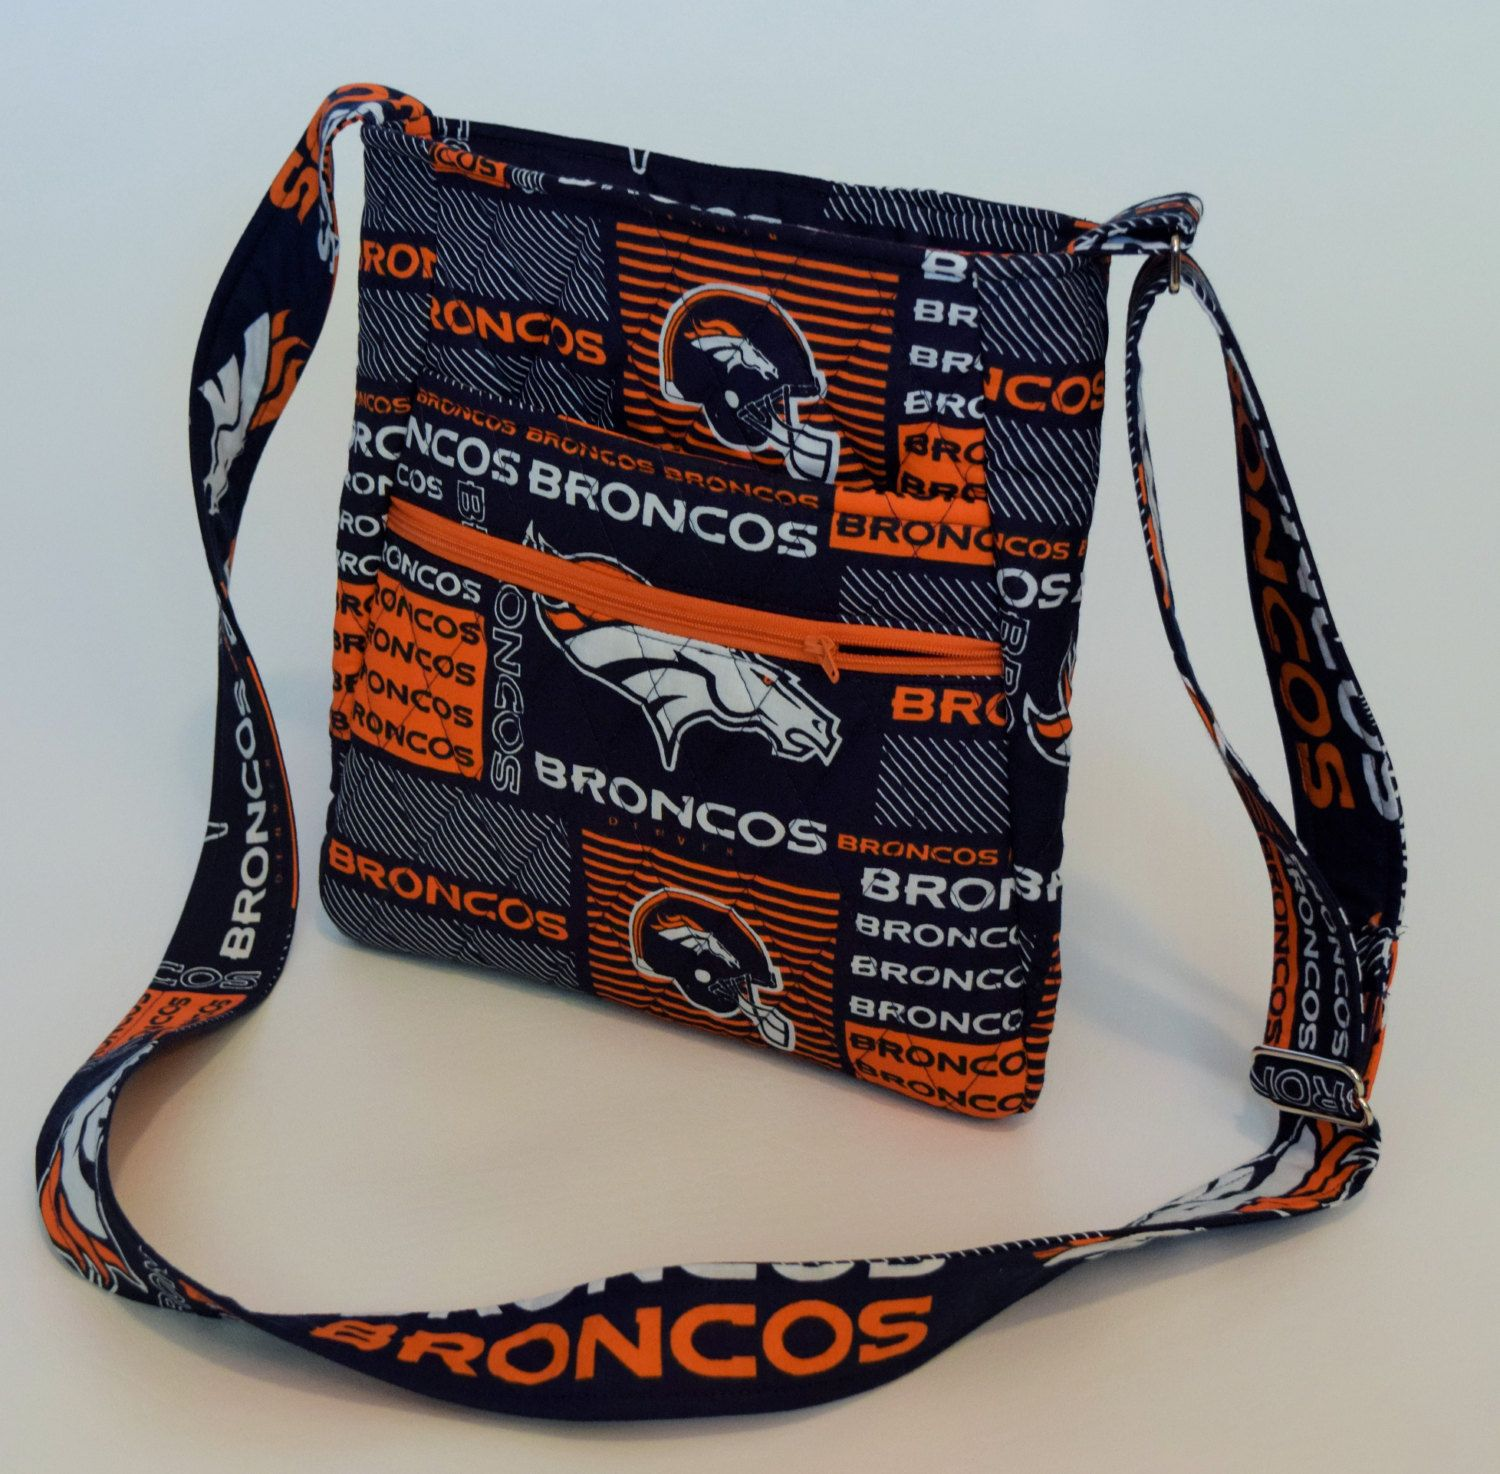 Bronncos Ipad Made Body Messenger Denver Crossbody Purse From Broncos Bag Hipster Twistedthreadsquilts Cross Fabric Quilted On By Etsy Nfl 8Ivvxd